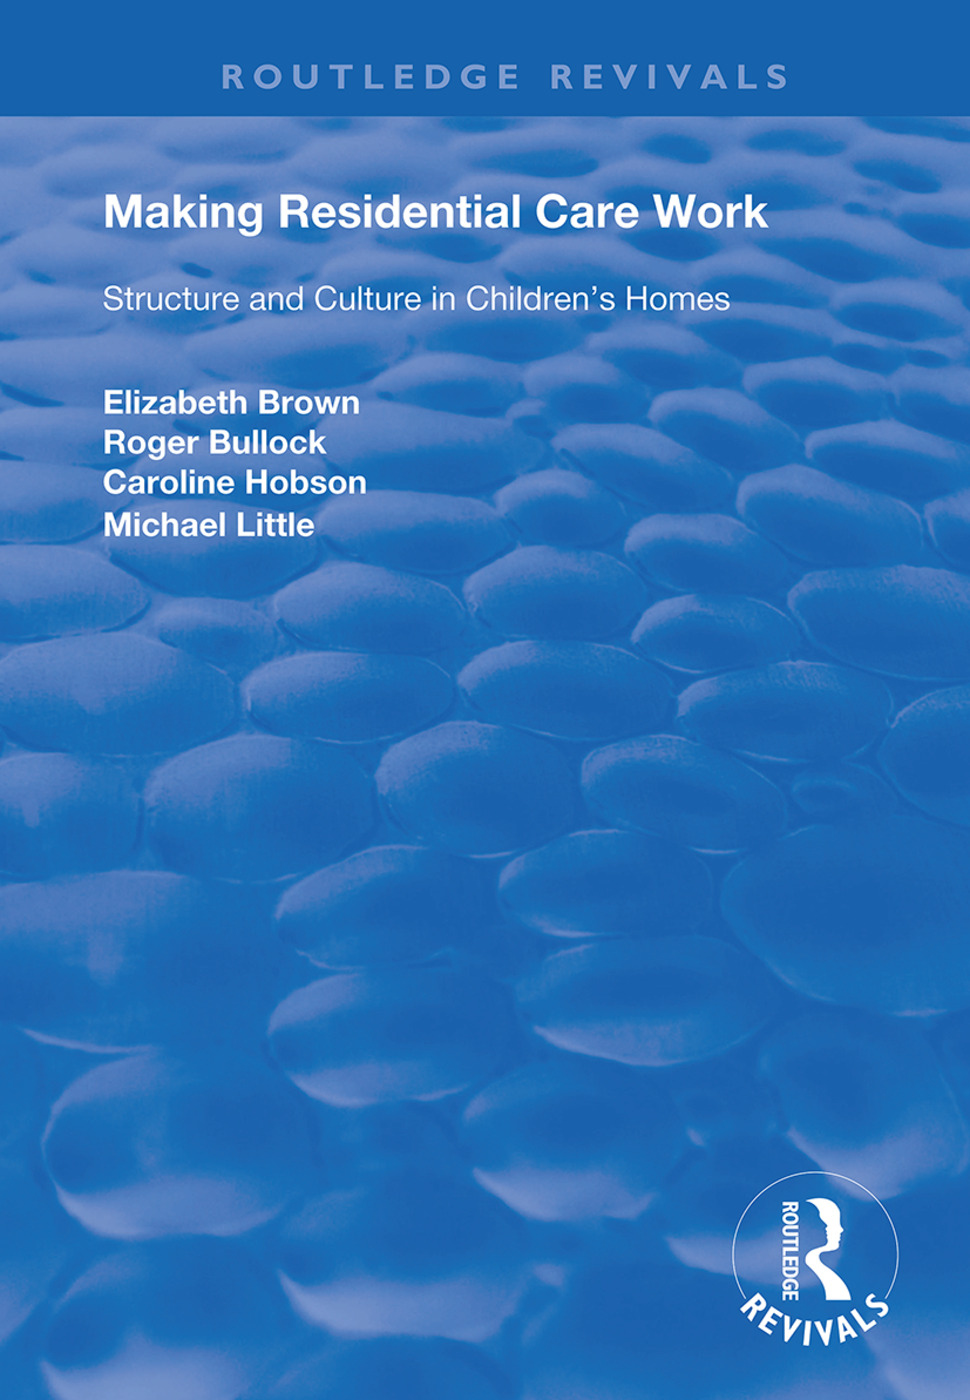 Making Residential Care Work: Structure and Culture in Children's Homes book cover